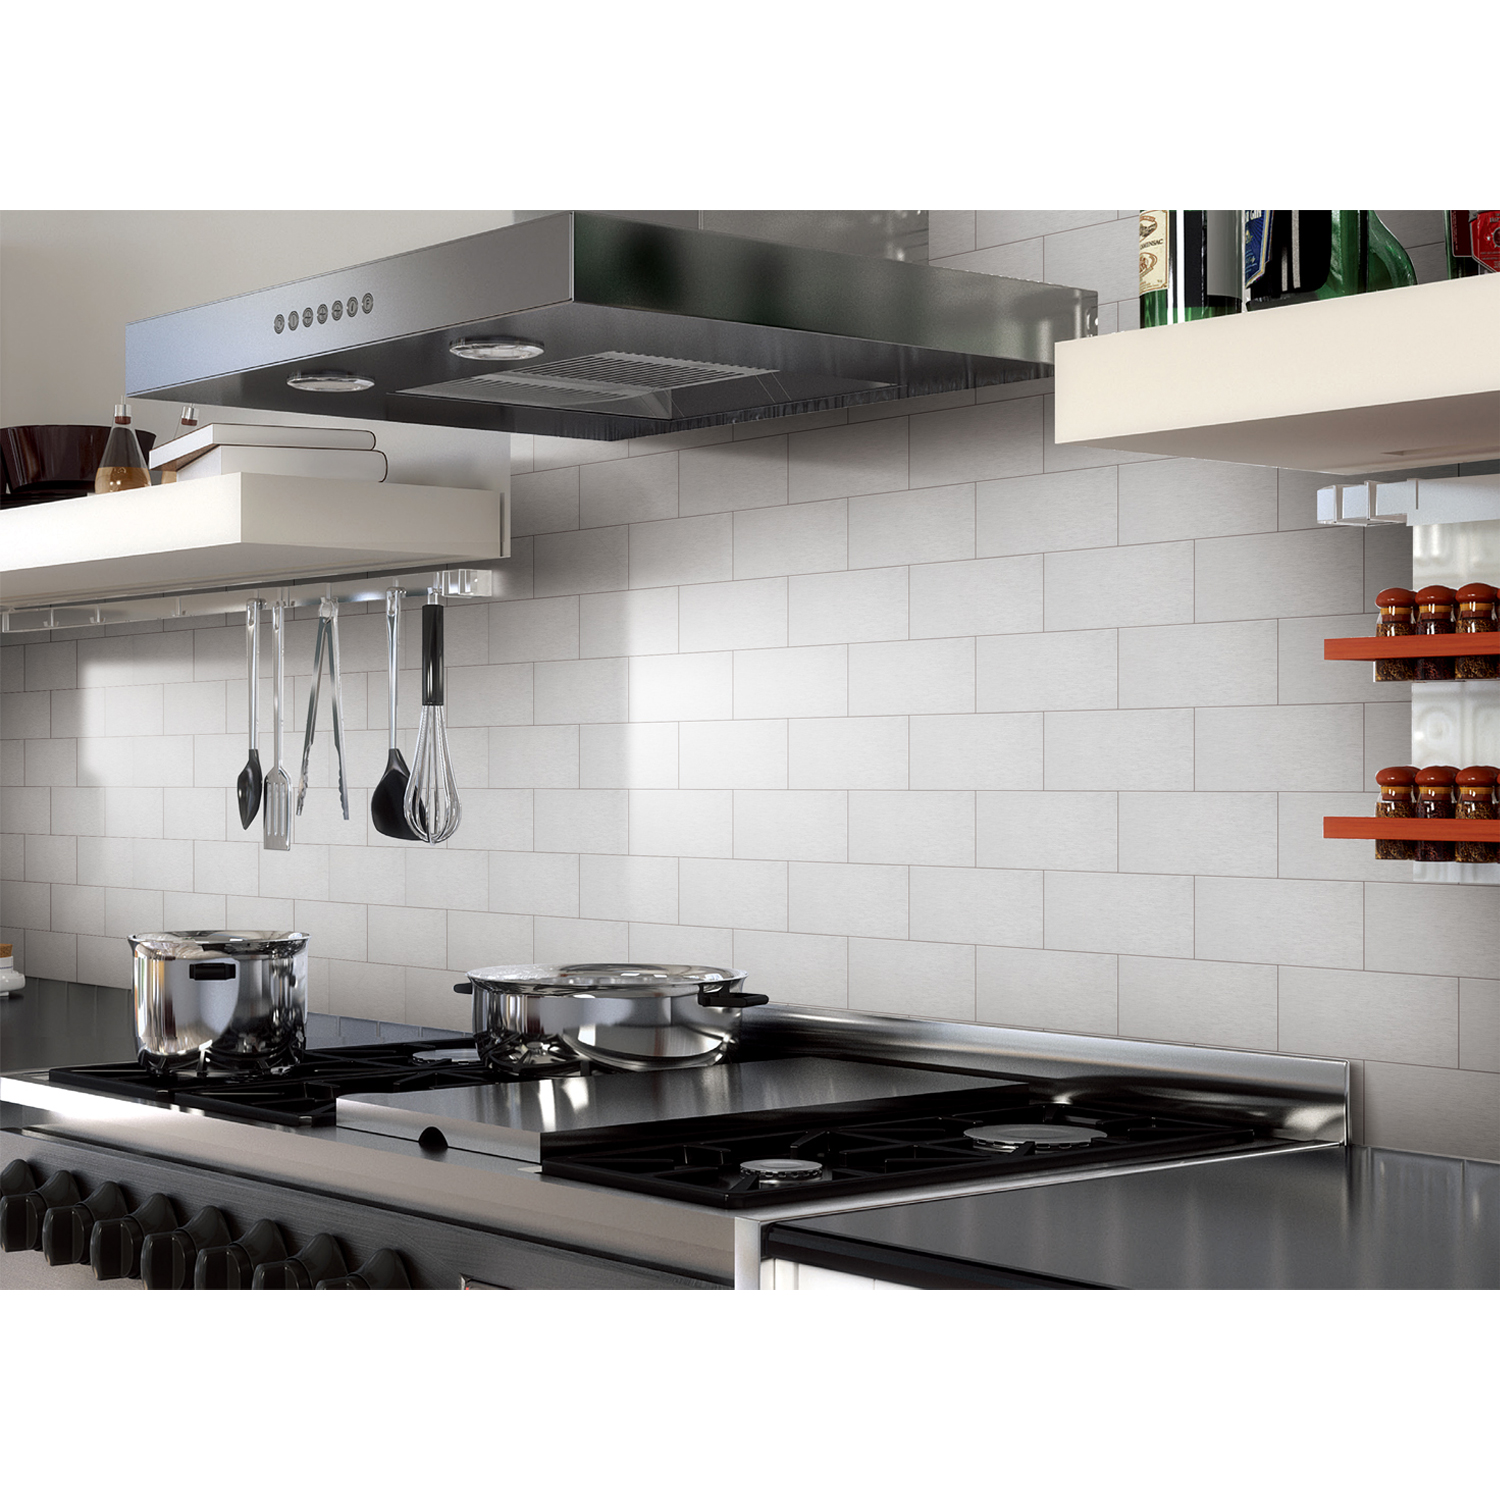 Art3d Peel And Stick Metal Backsplash Tile For Kitchen Bathroom 3 X 6 Silver Subway 4 Pack